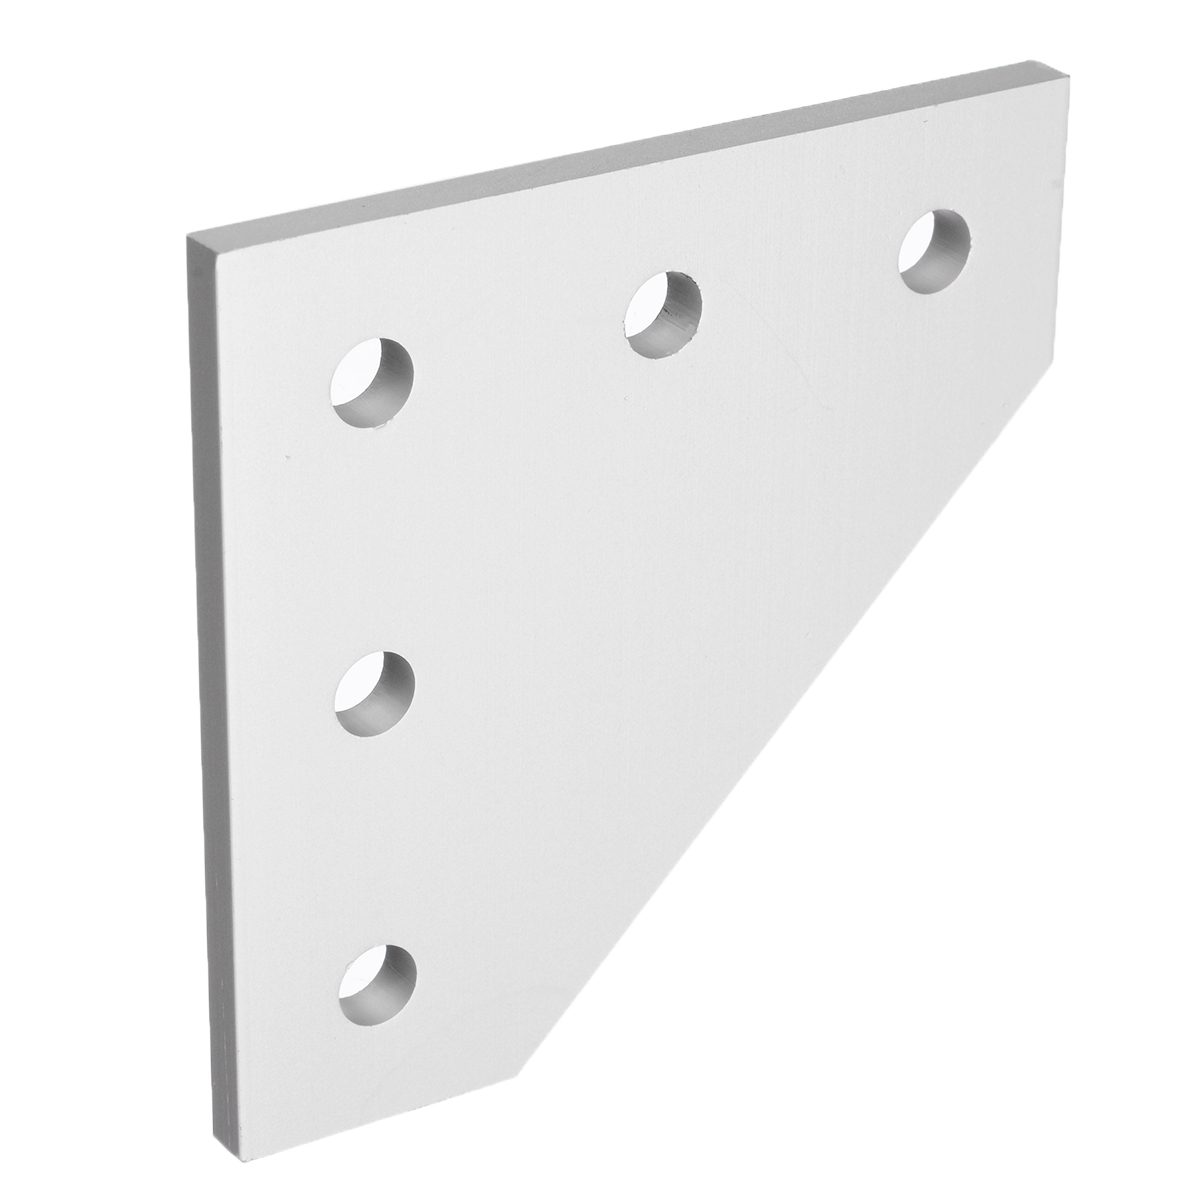 5 Hole 90 Degree Joint Board <font><b>Plate</b></font> <font><b>Corner</b></font> Angle Bracket Connection Joint Strip for Aluminum Profile <font><b>2020</b></font> Furniture Hardware image